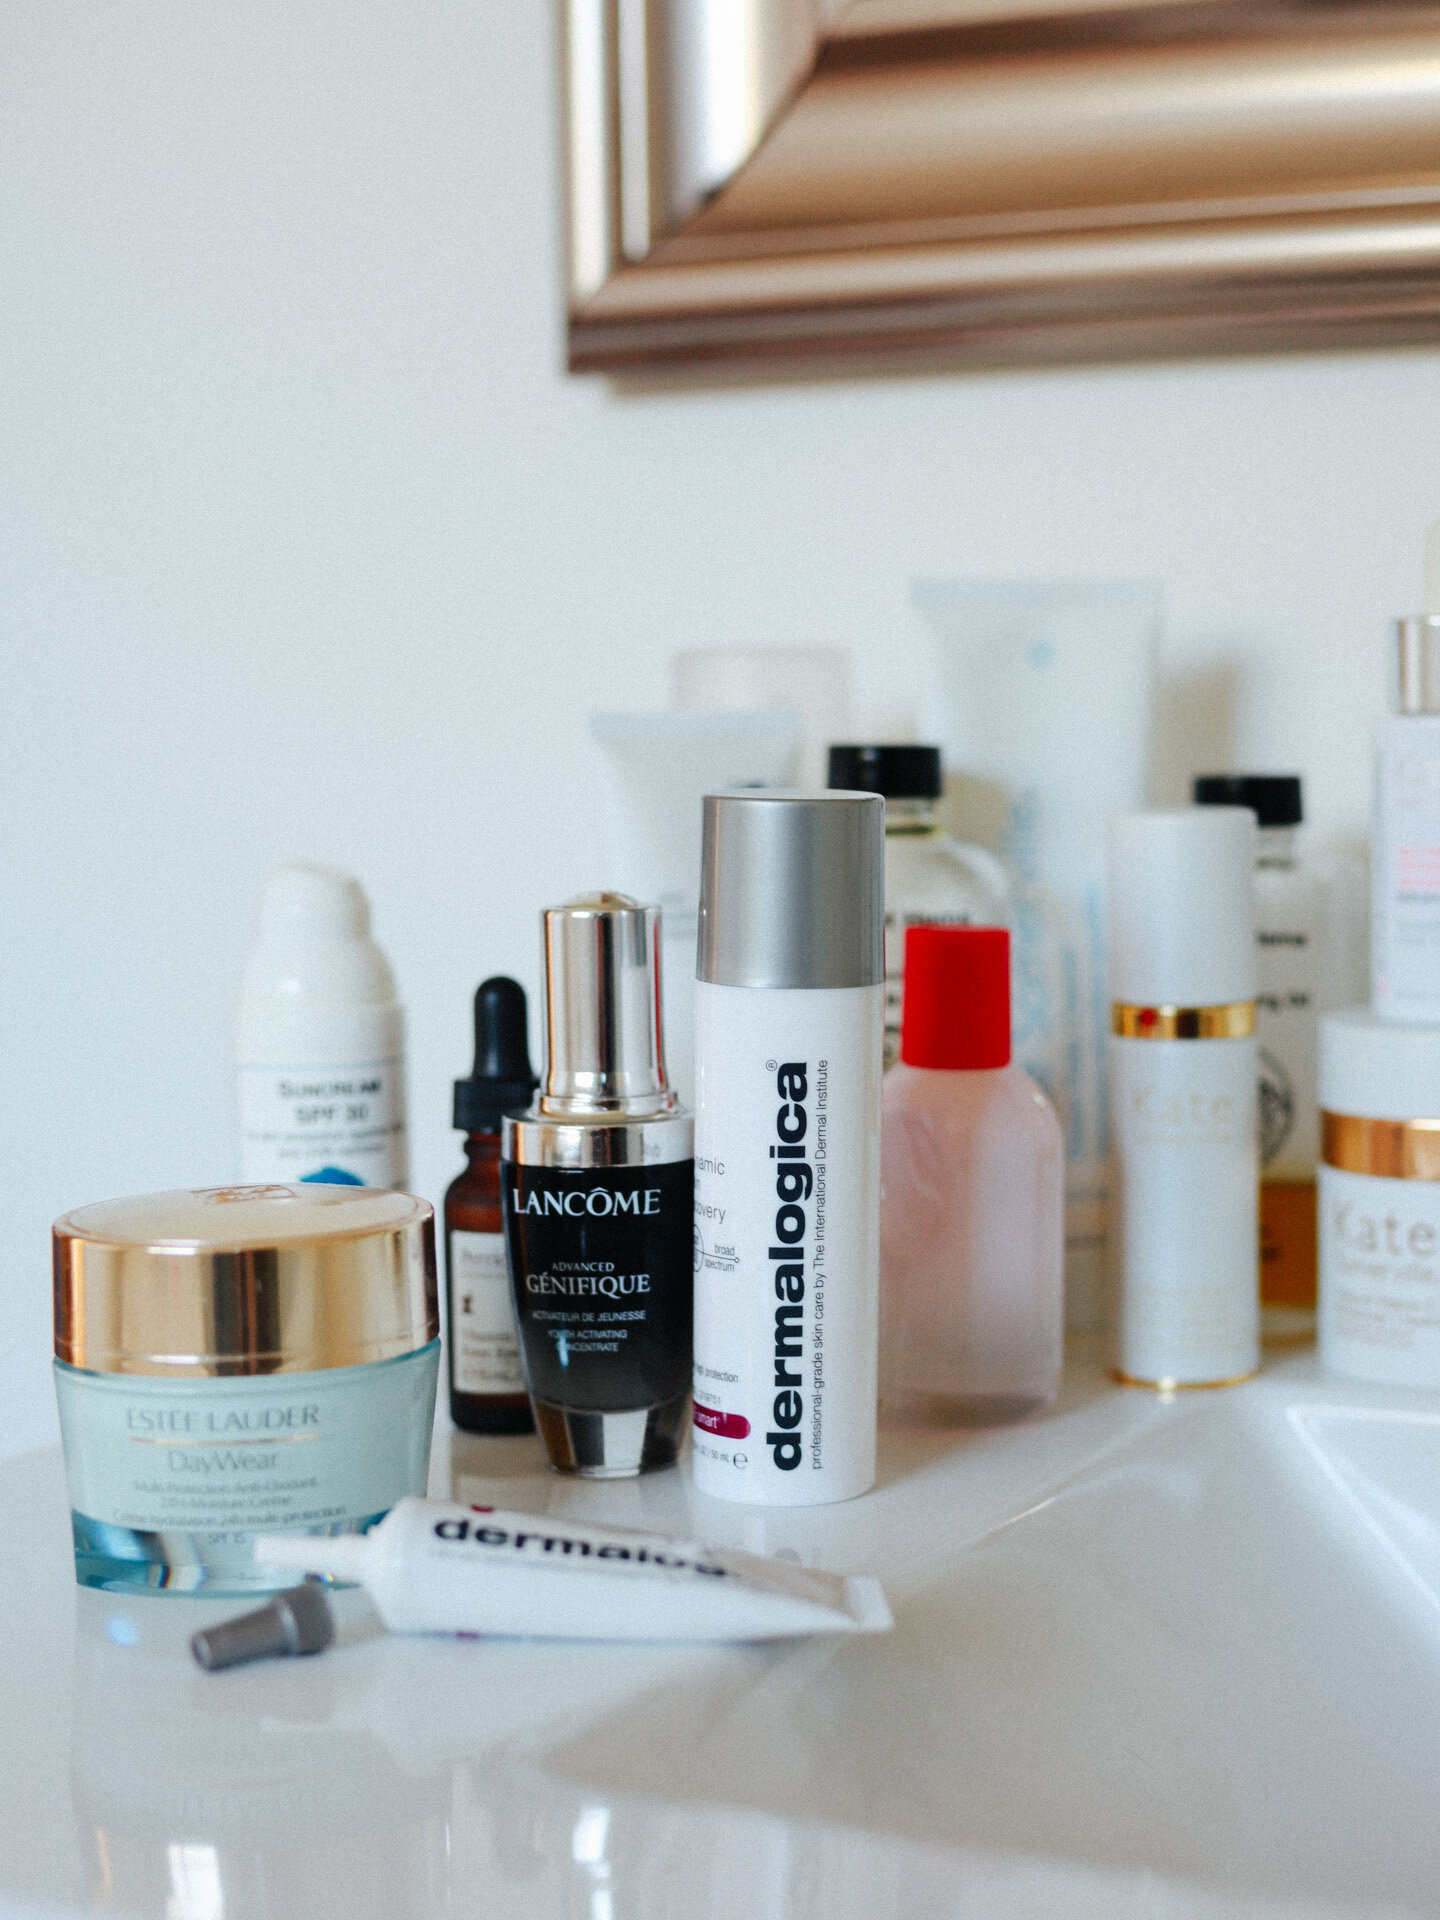 The_Residents_Lucy_Revill_Skincare_Lancome_Dermalogica-17.jpg